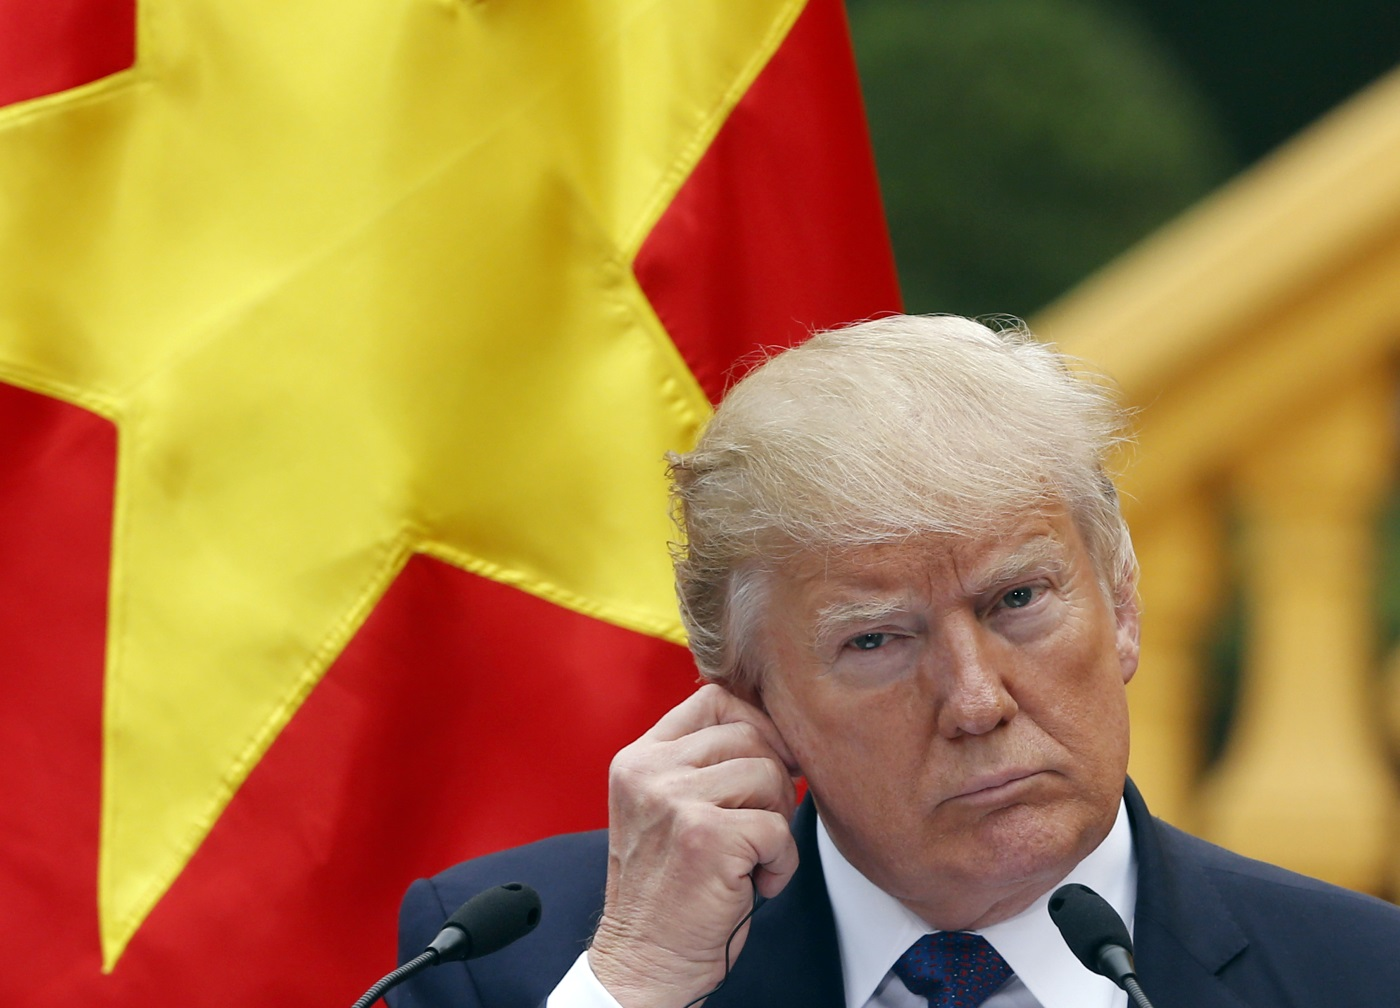 U.S. President Donald Trump attends a press conference at the Presidential Palace in Hanoi, Vietnam, Sunday, Nov. 12, 2017. (Kham/Pool Photo via AP)